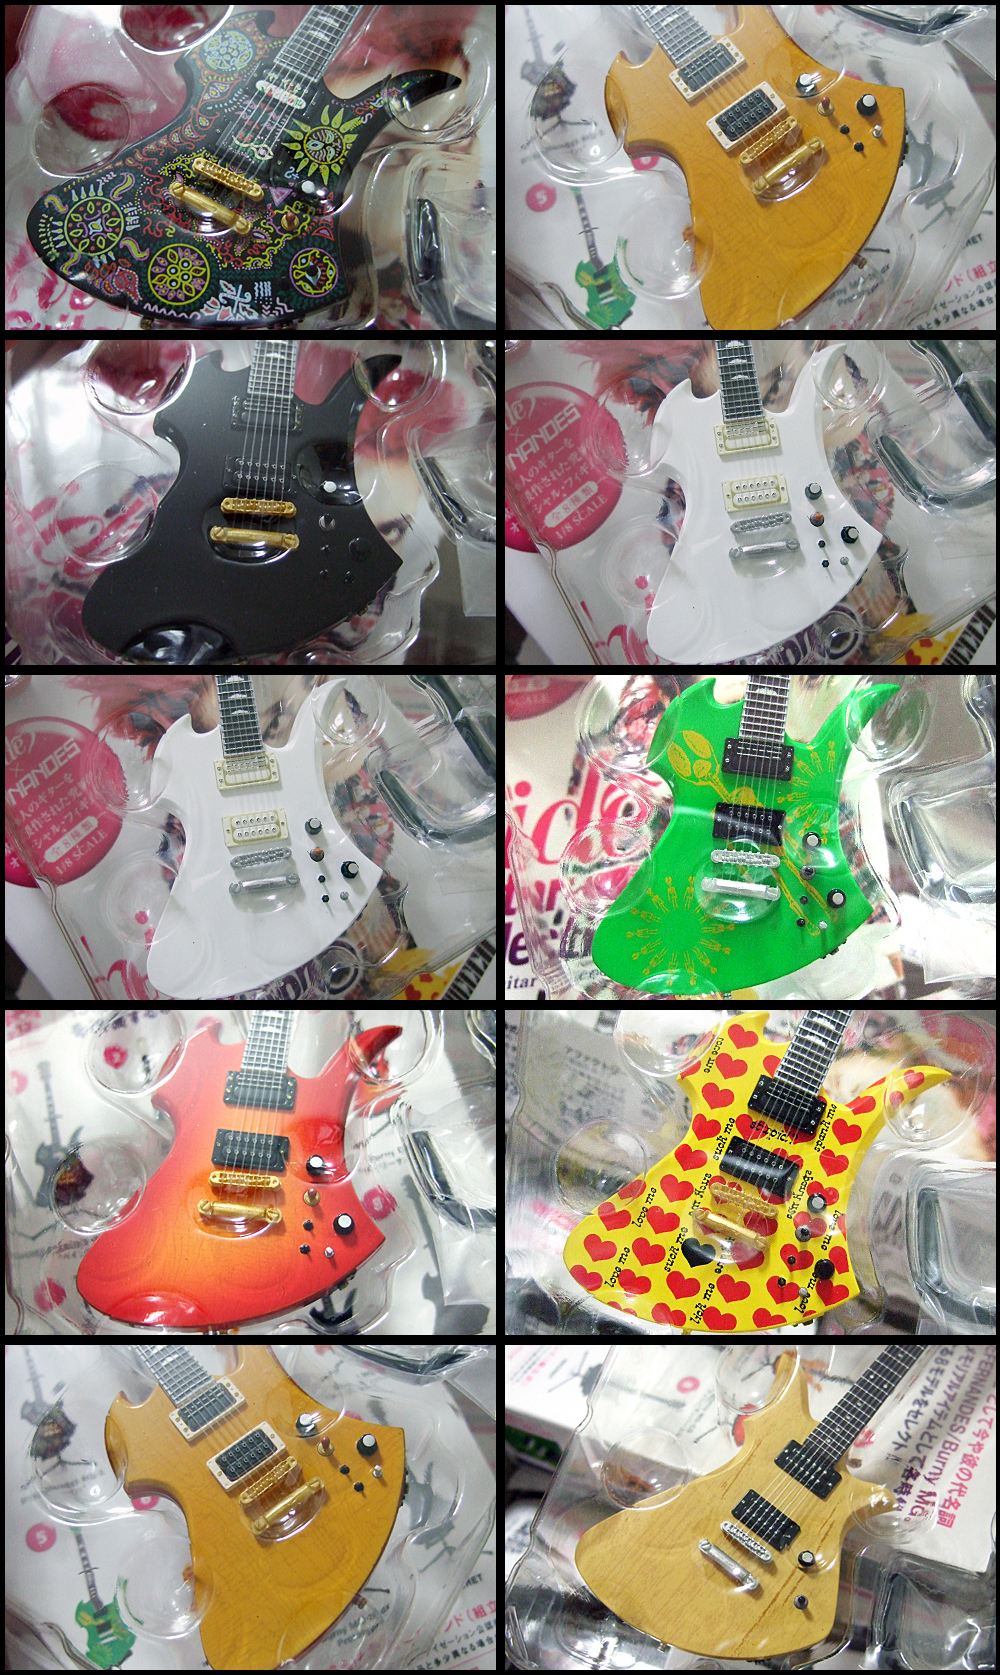 hide_Guitar_Collection_3